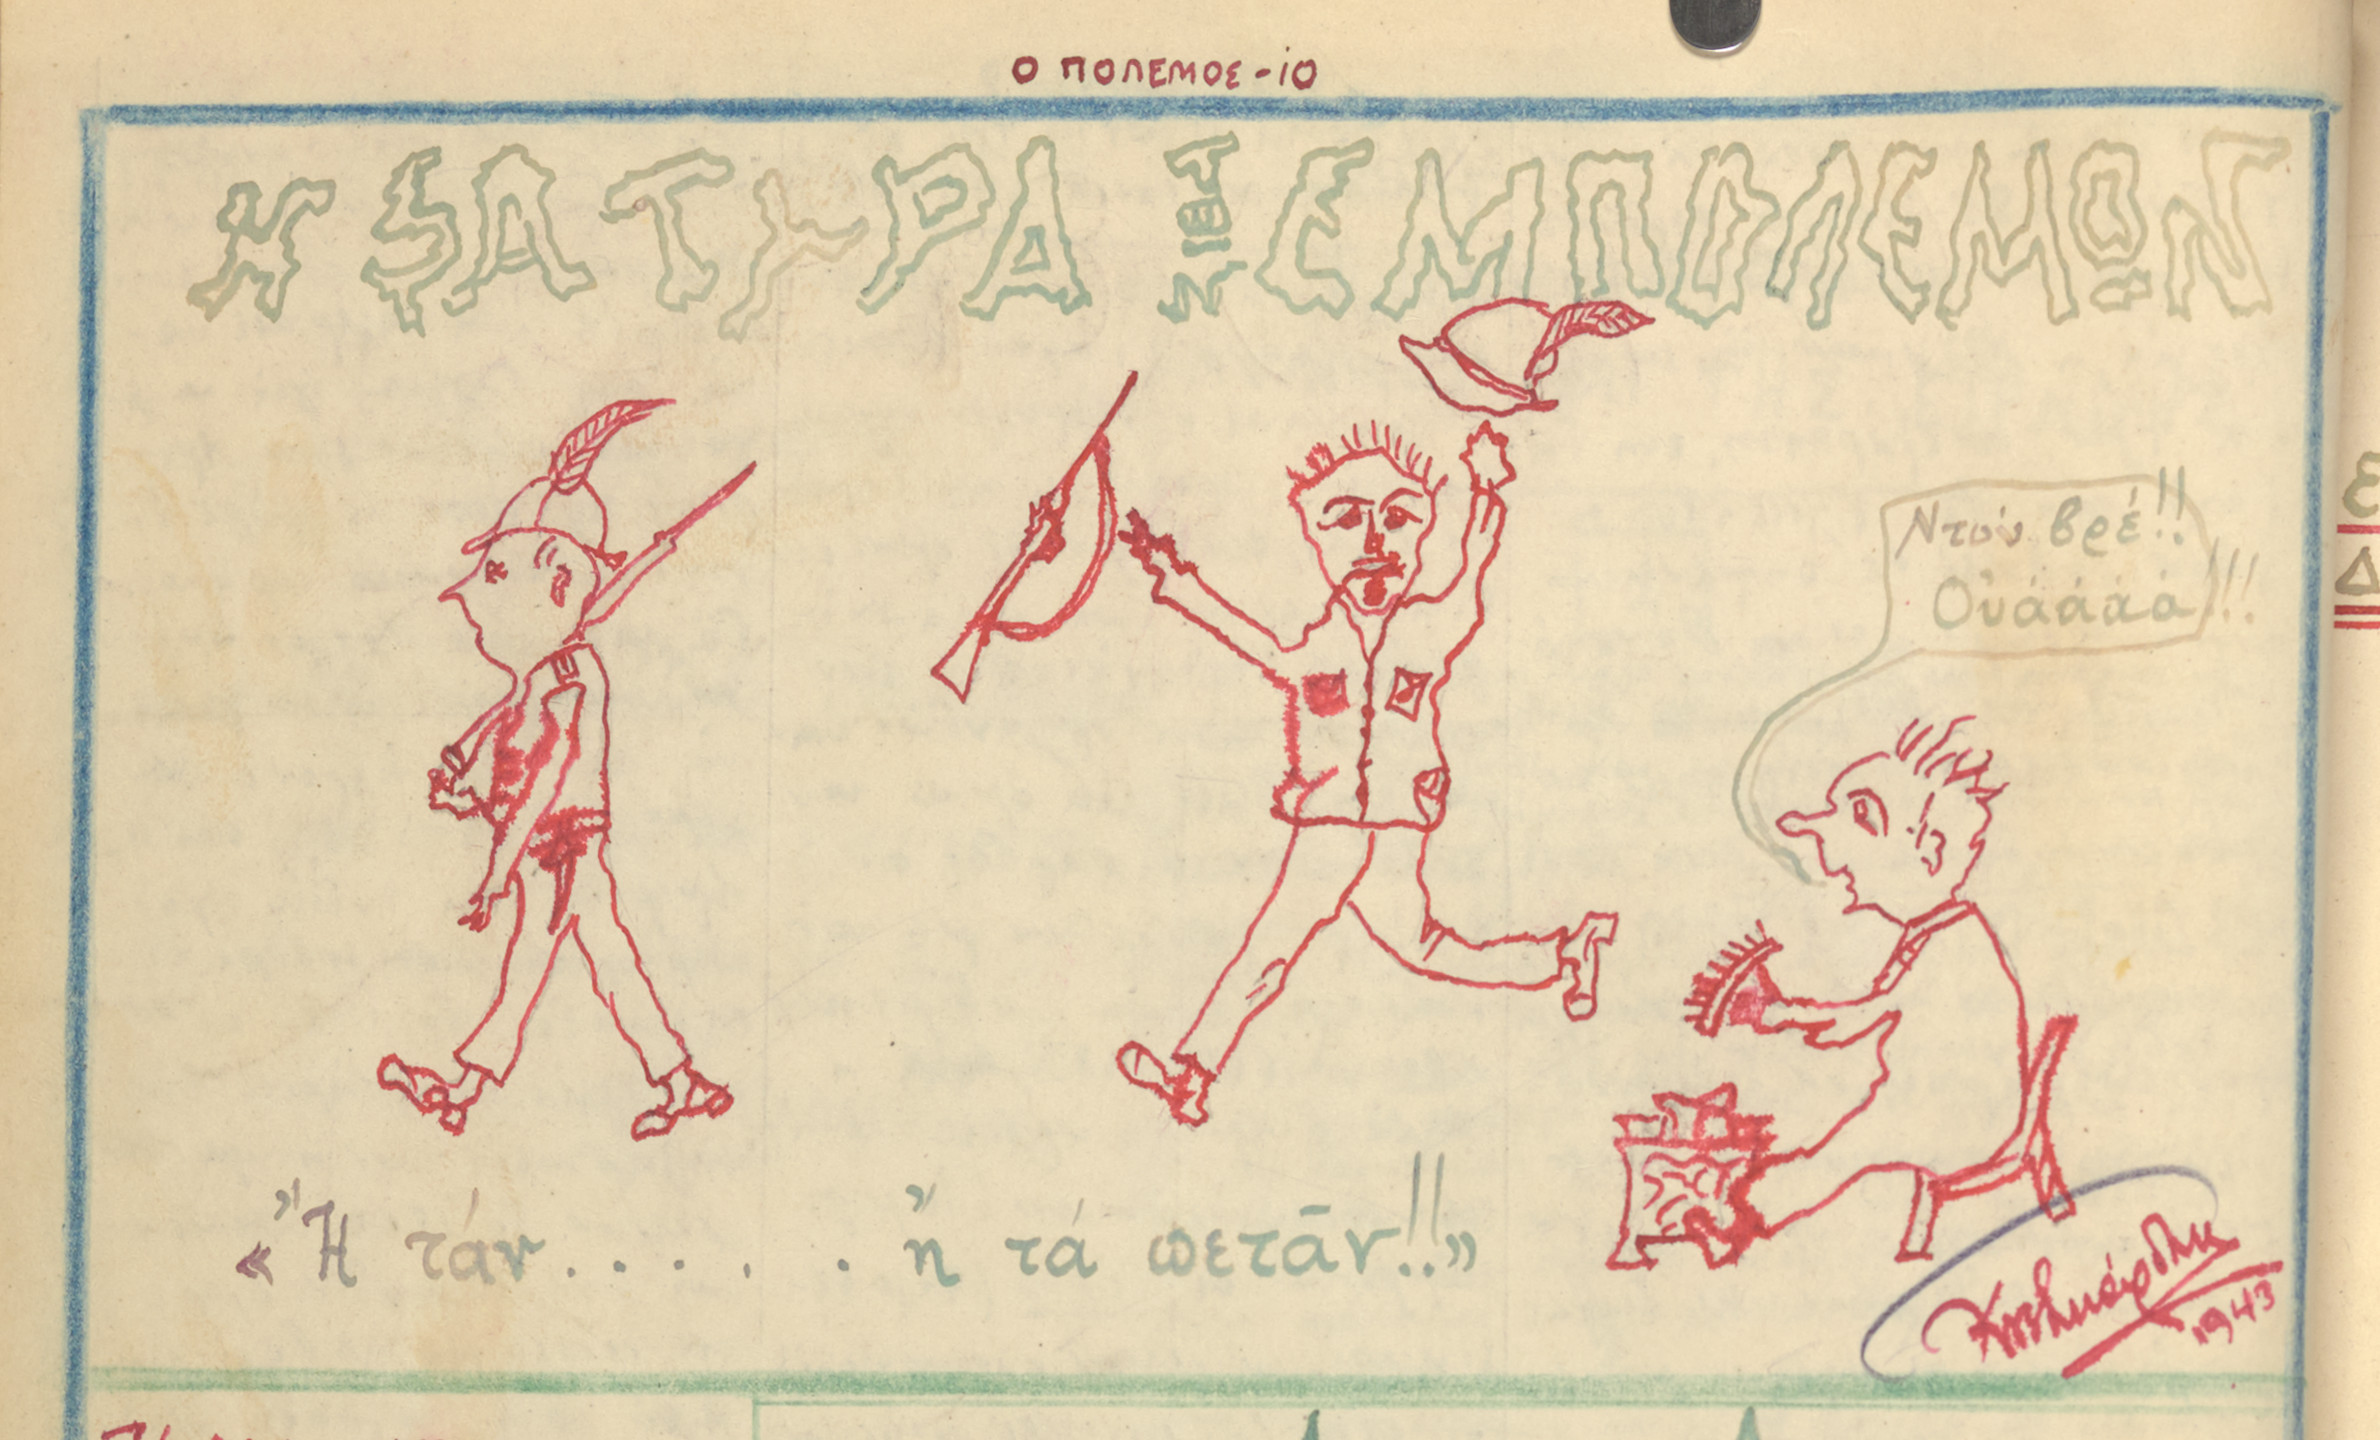 "Cartoon from a handwritten newspaper created by teenager George Ftikas and his friend, which was distributed throughout their neighborhood in Salonika.  The cartoon in entitled, ""The Satire of People at War.""  The caption reads, ""I tan i ... ta petas"" (Return alive or ... throw away everything and run), a play on the traditional  admonition to Spartan soldiers ""I tan I epi tas,"" (Return with your shield or on it [dead, but with honor]).  The cartoon mocks the Italian soldiers, who attacked Greece from Albania in in October 1948, assuming that  they would have an easy victory.   Instead, Greek forces pushed Italian troops back to the border, and Germany was forced to call their troops from the eastern front in to intervene.  Greek forces were subdued soon after, but this redirection of forces delayed the German invasion of the Soviet Union, causing them to fight in the winter and leading to their ultimate defeat."